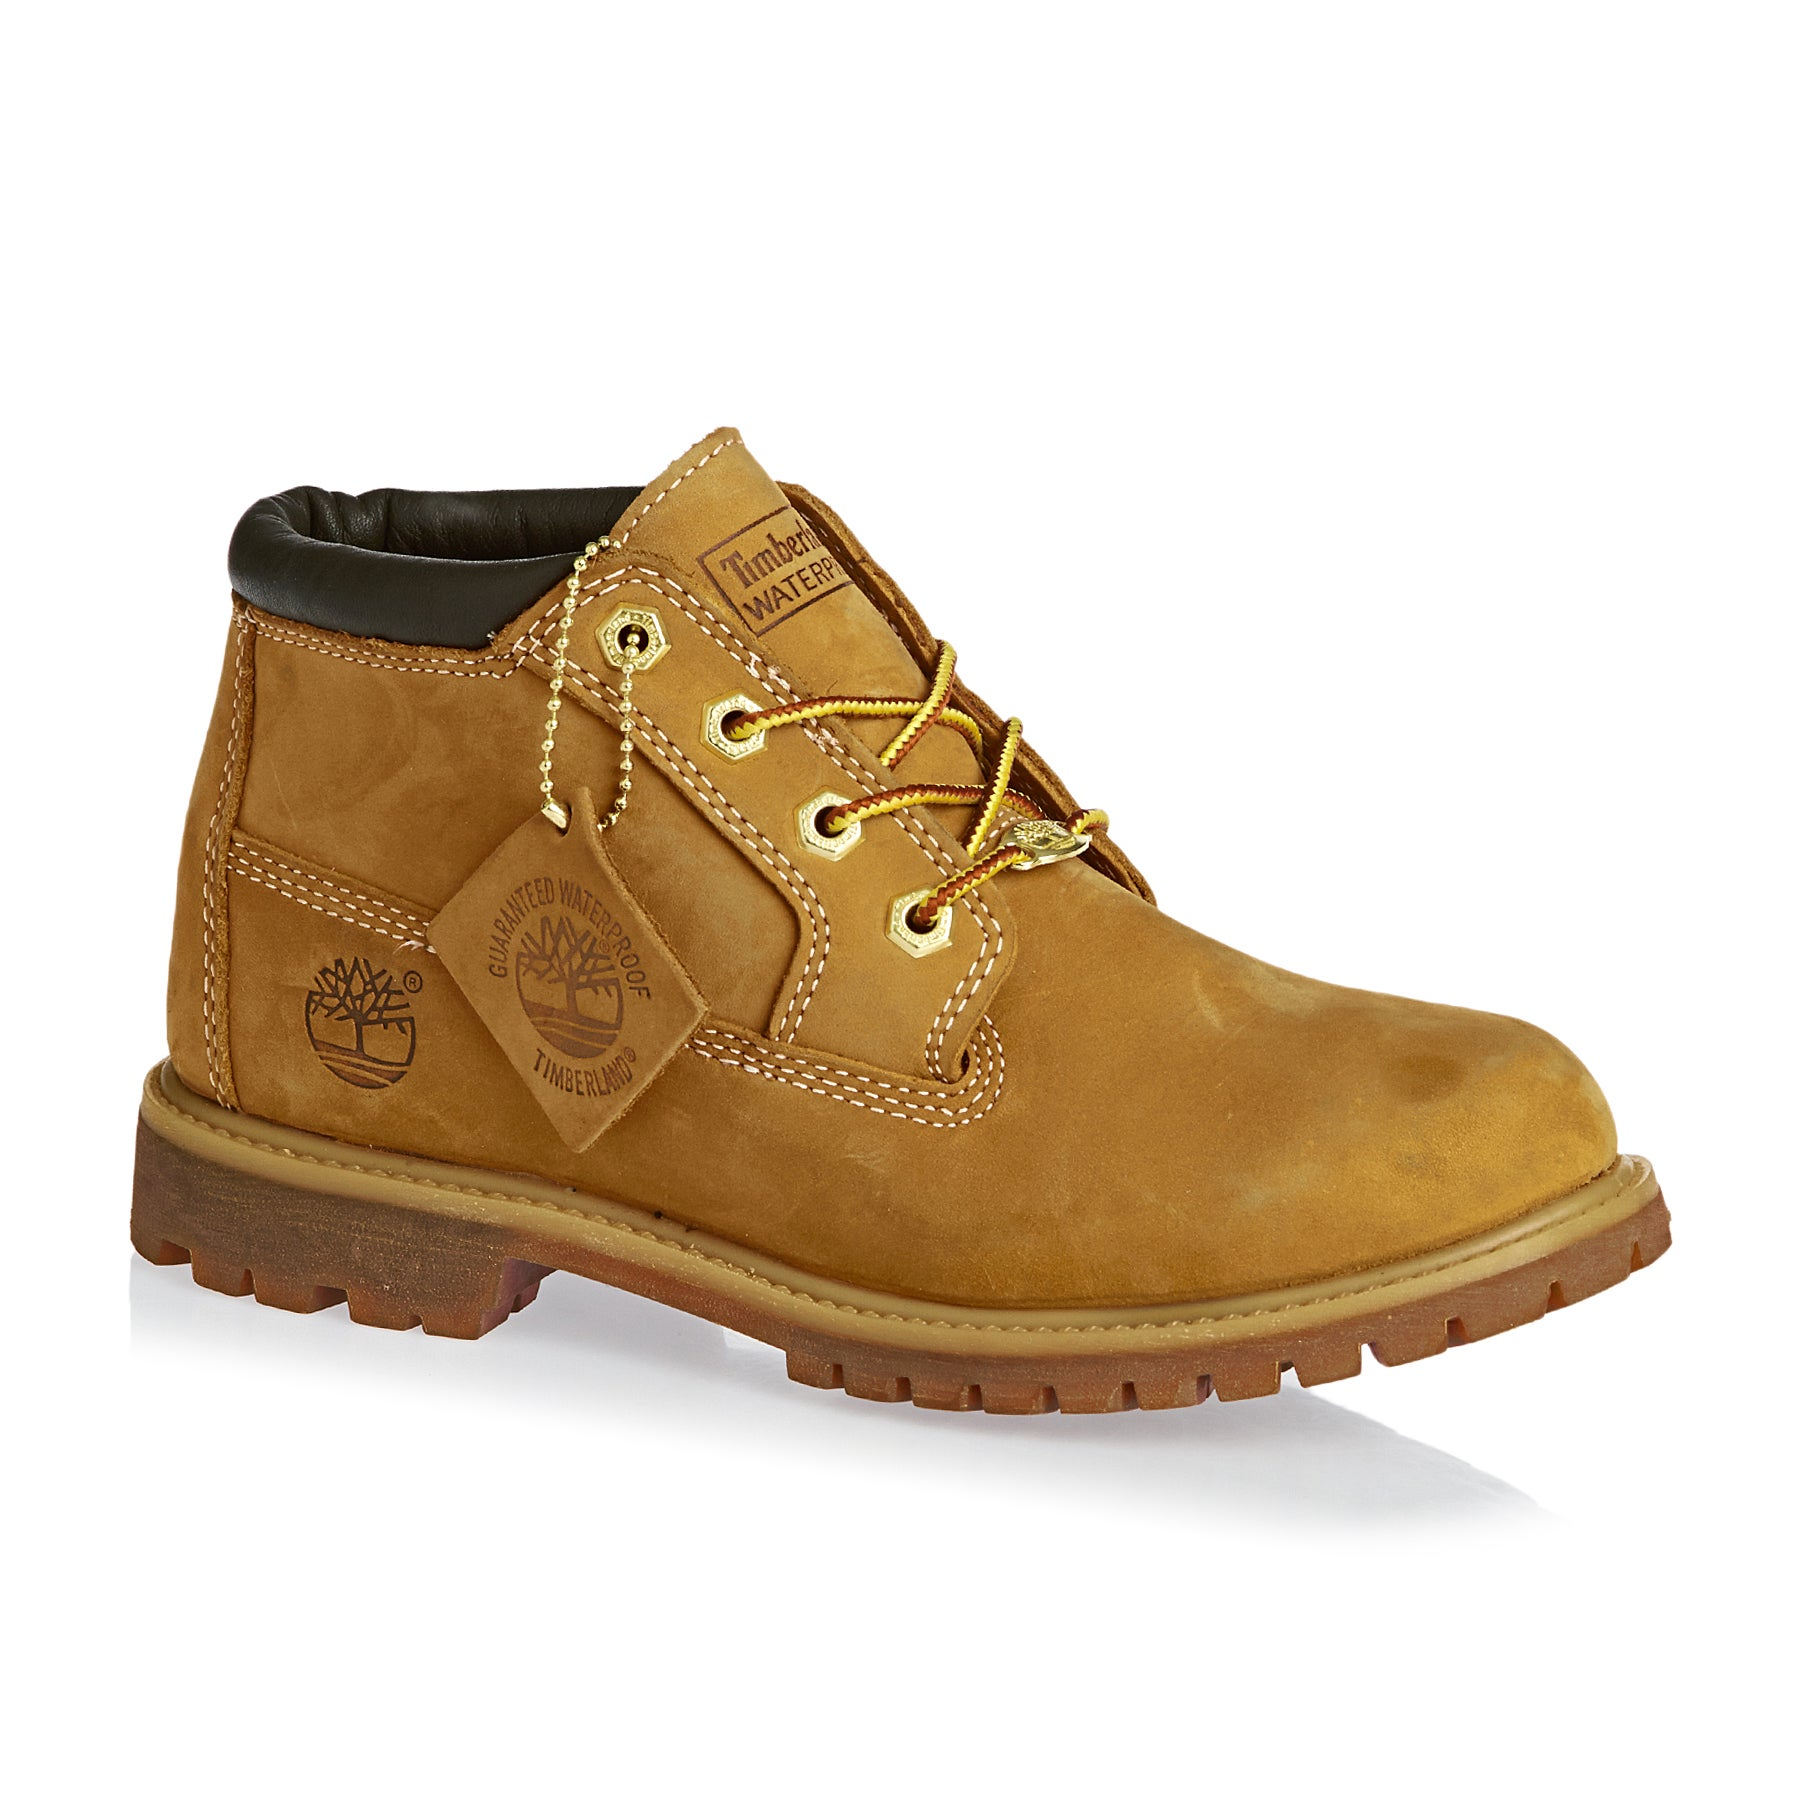 Timberland Earthkeepers Nellie Chukka Double WTPF Womens Boots - Wheat Yellow